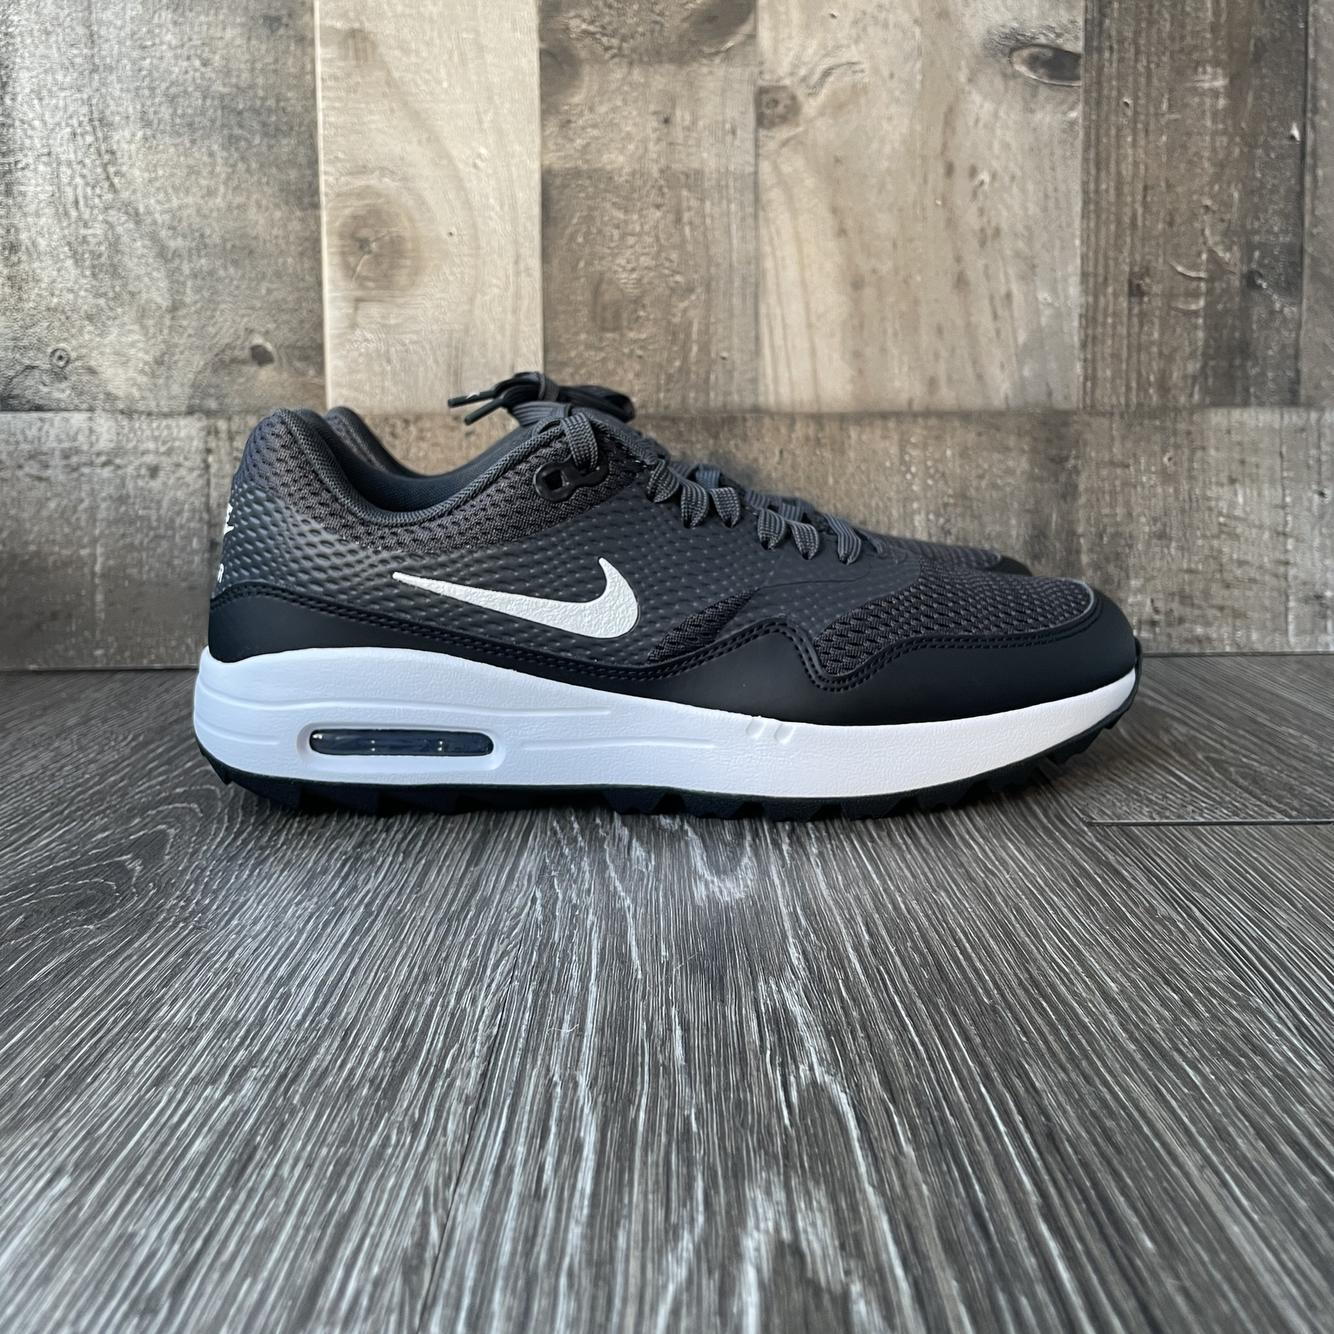 Nike Air Max 1 G Spikeless Golf Shoes White/Black Size 10 Women's ...